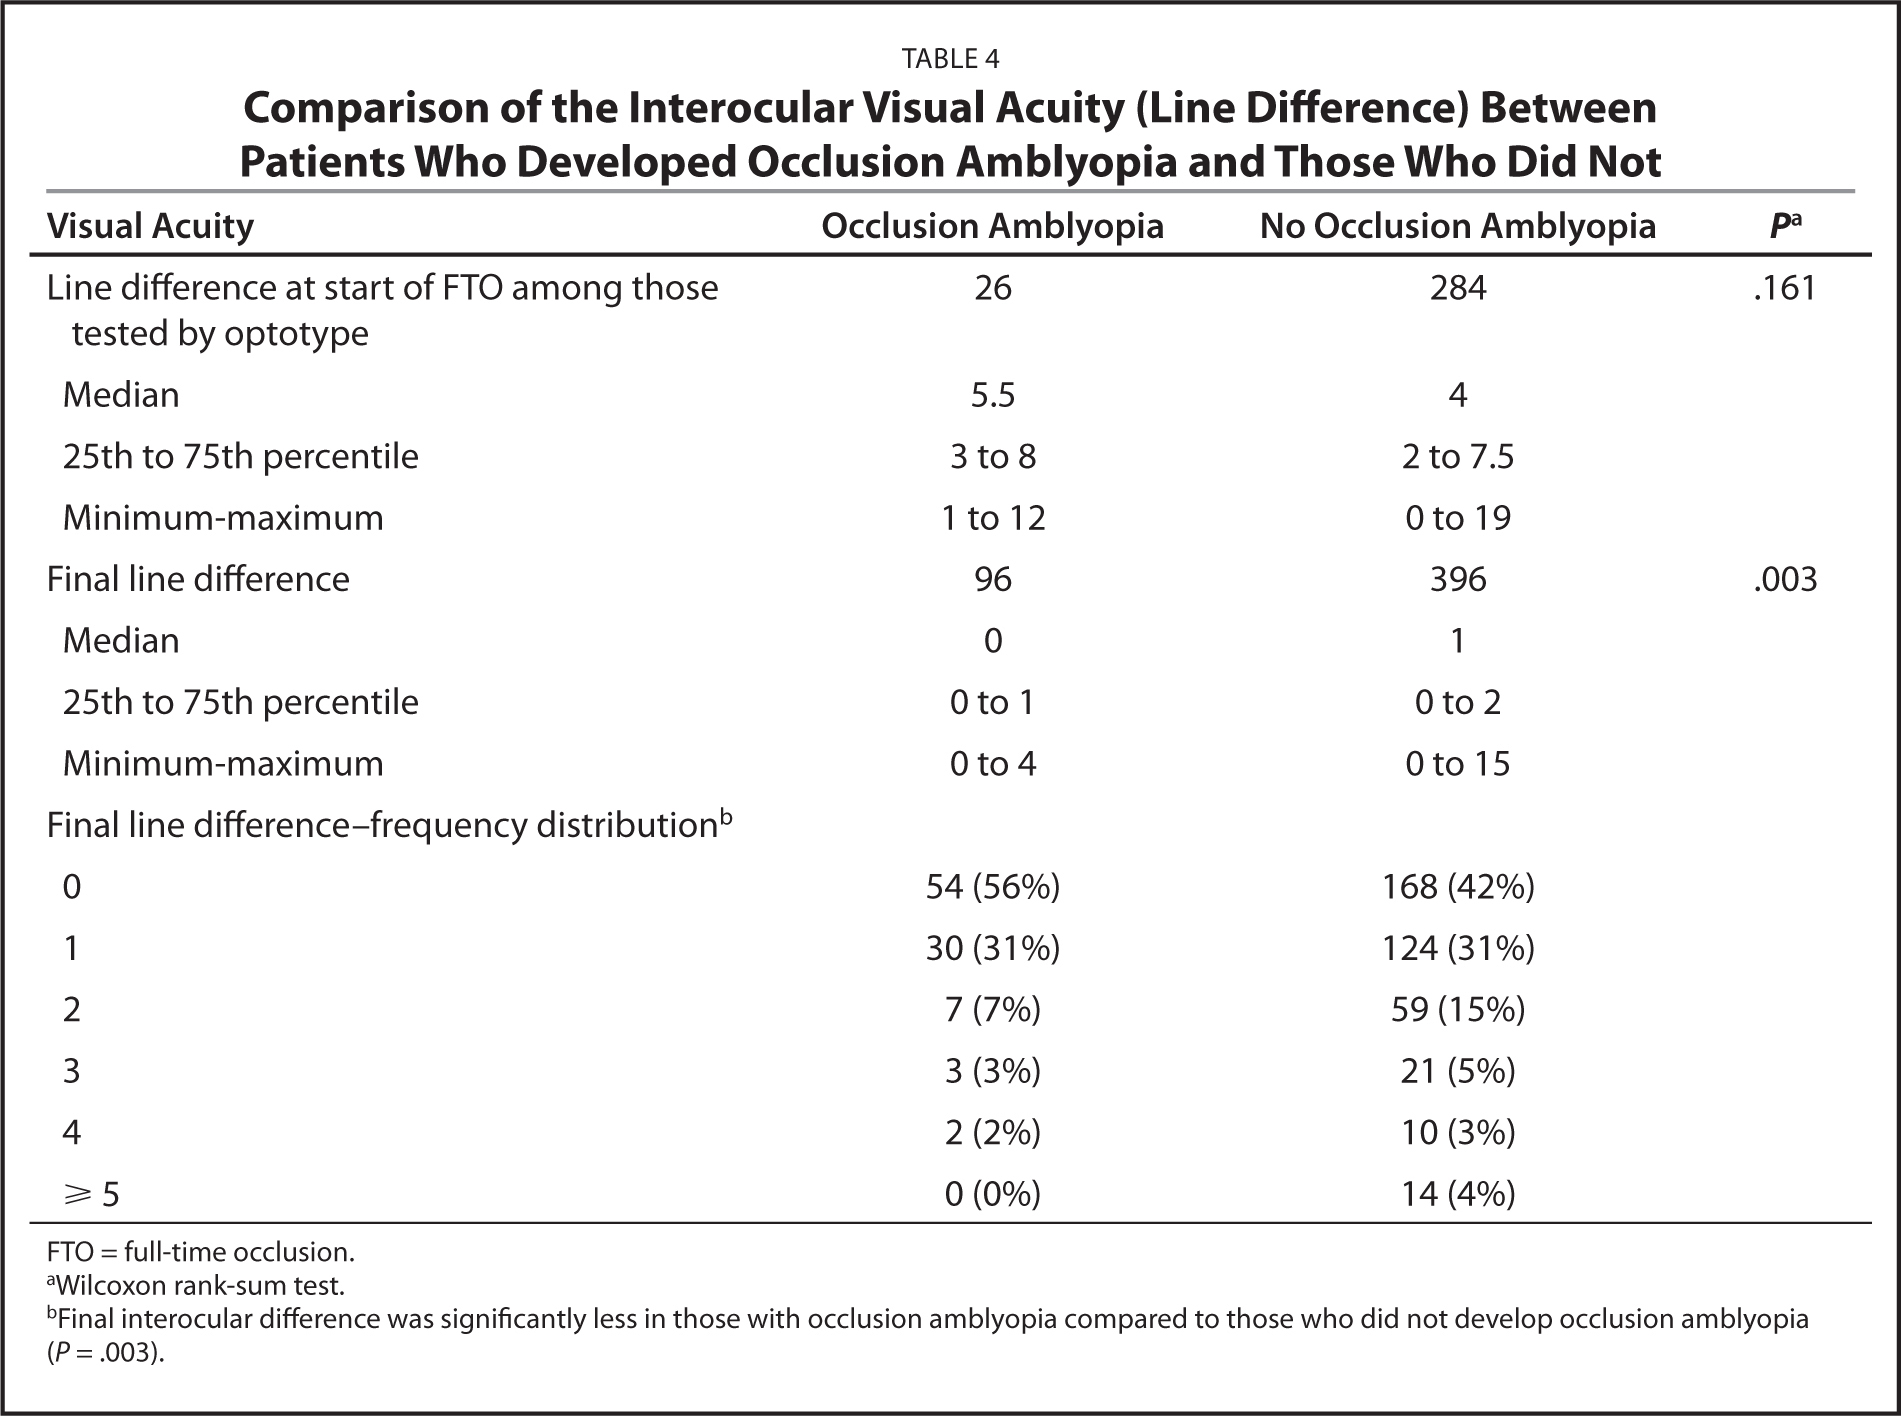 Comparison of the Interocular Visual Acuity (Line Difference) Between Patients Who Developed Occlusion Amblyopia and Those Who Did Not